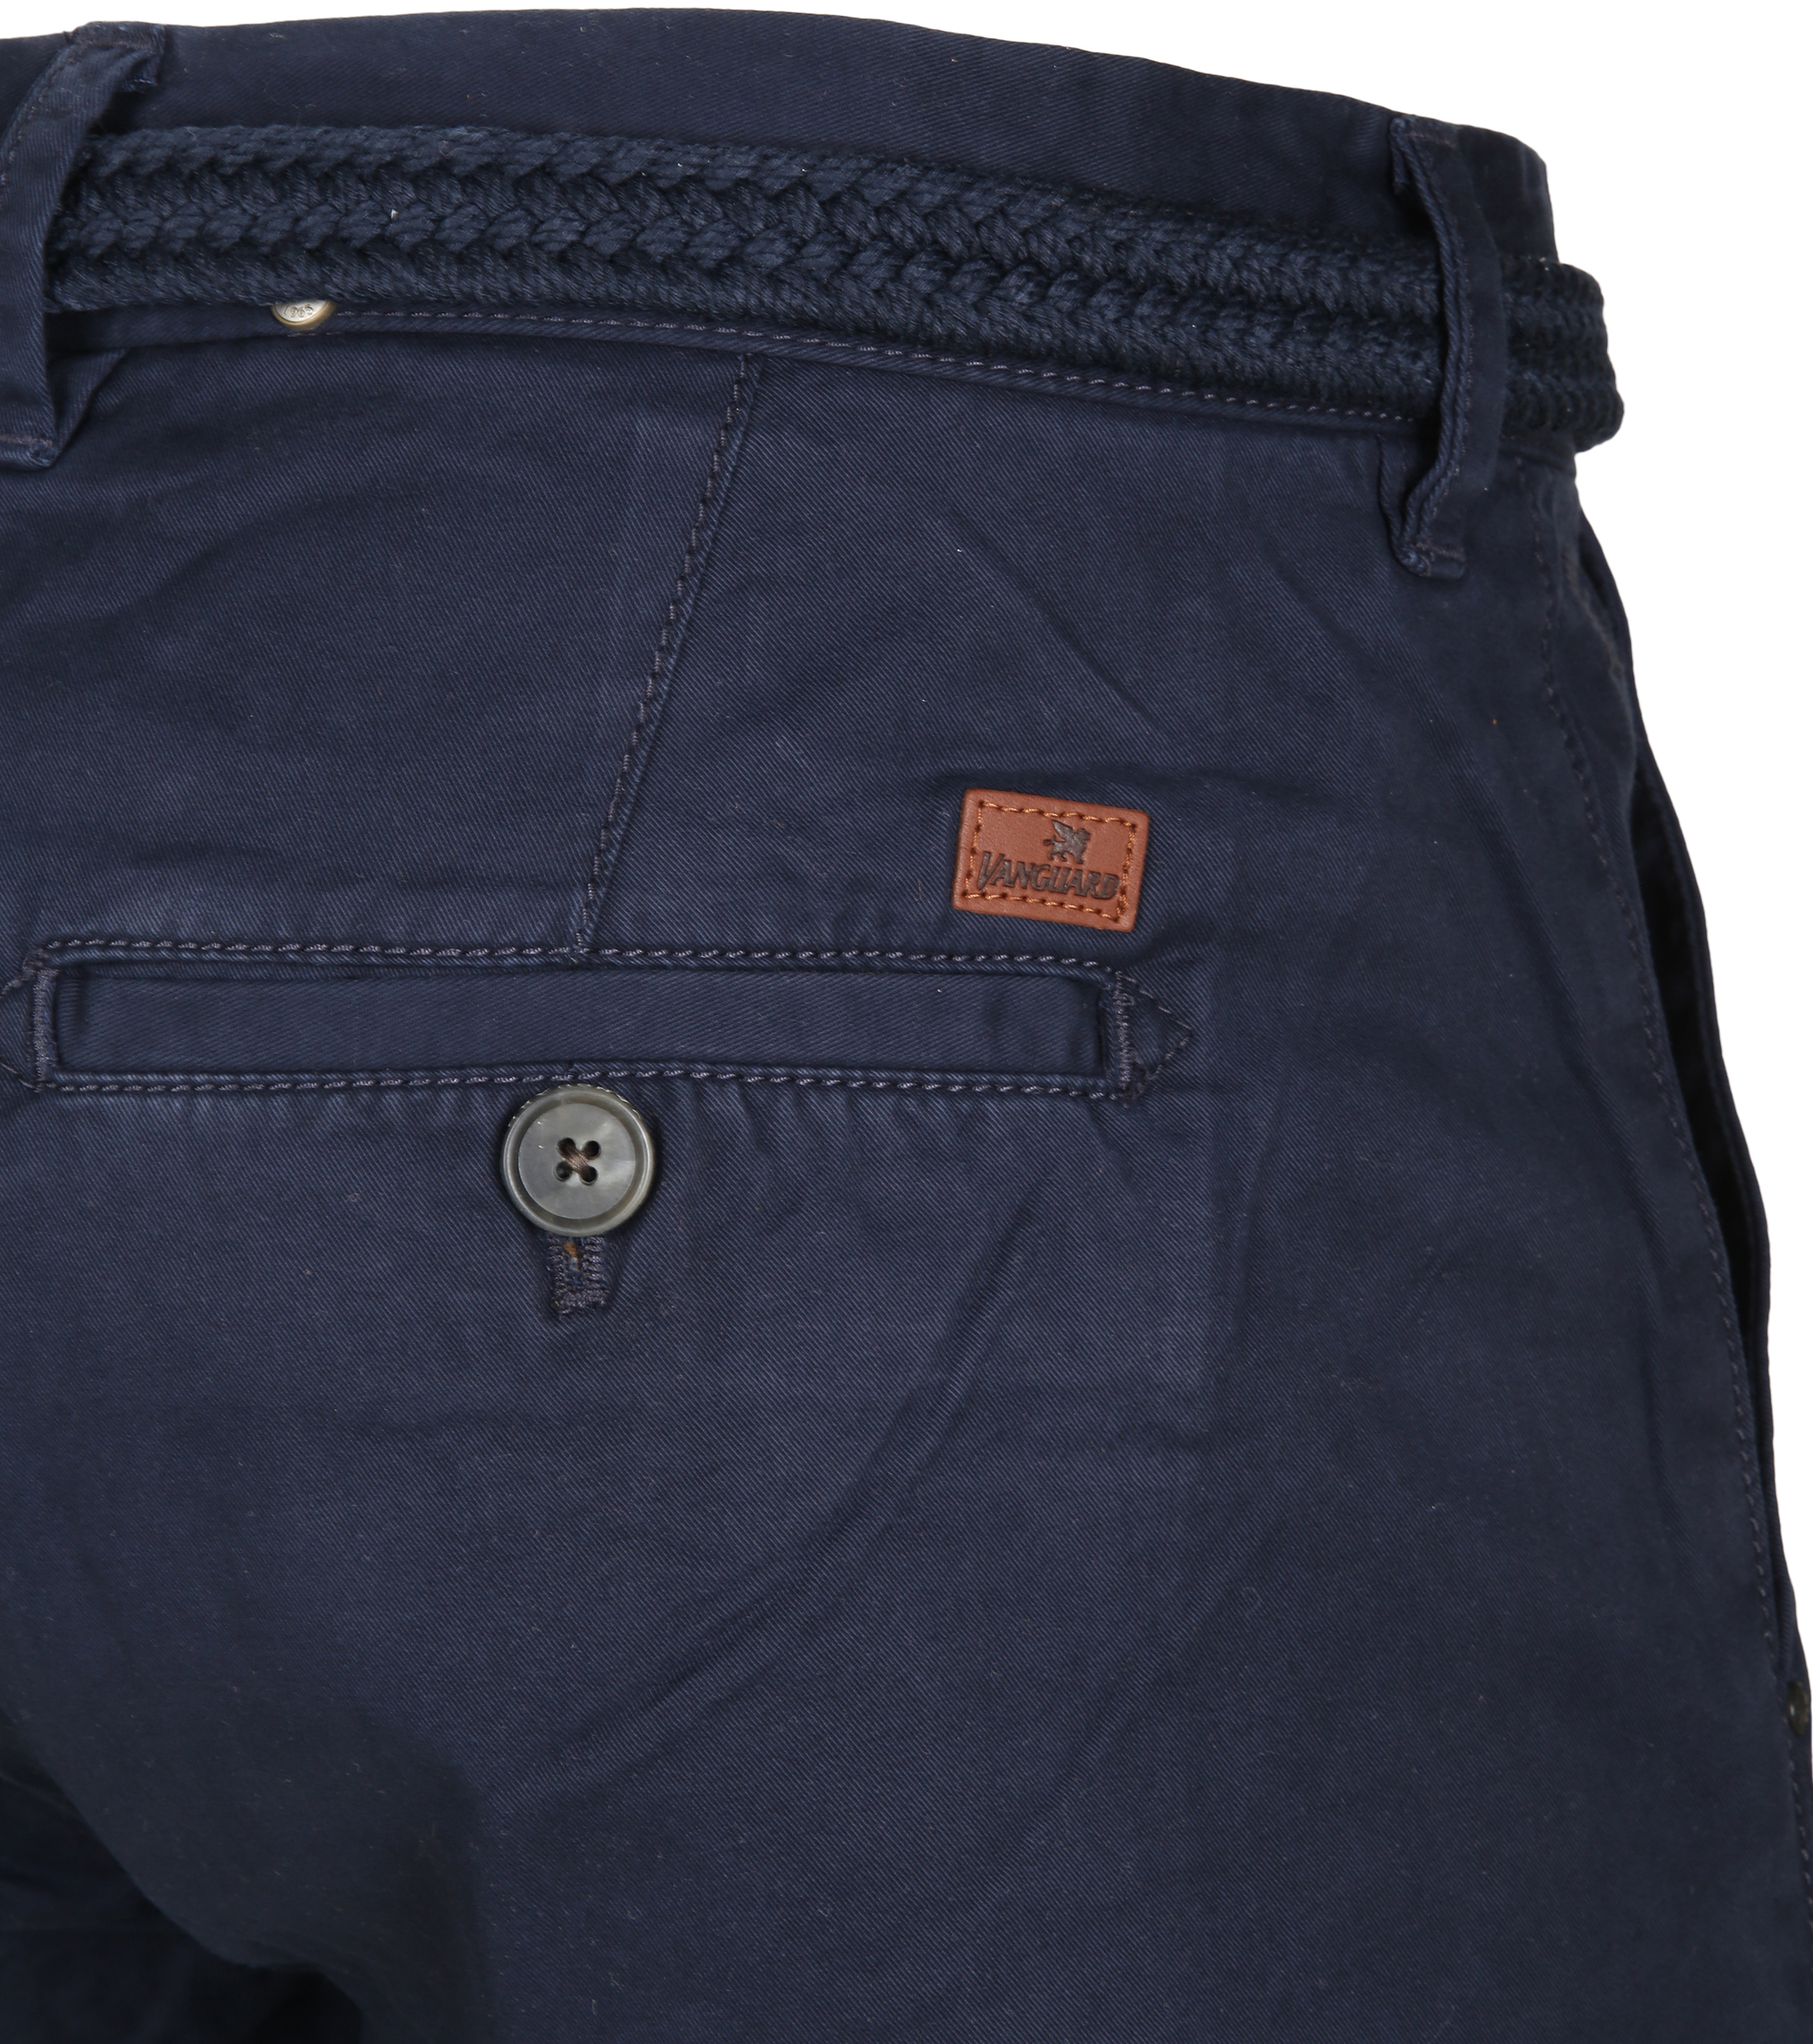 Vanguard Korte Broek Twill Navy foto 3